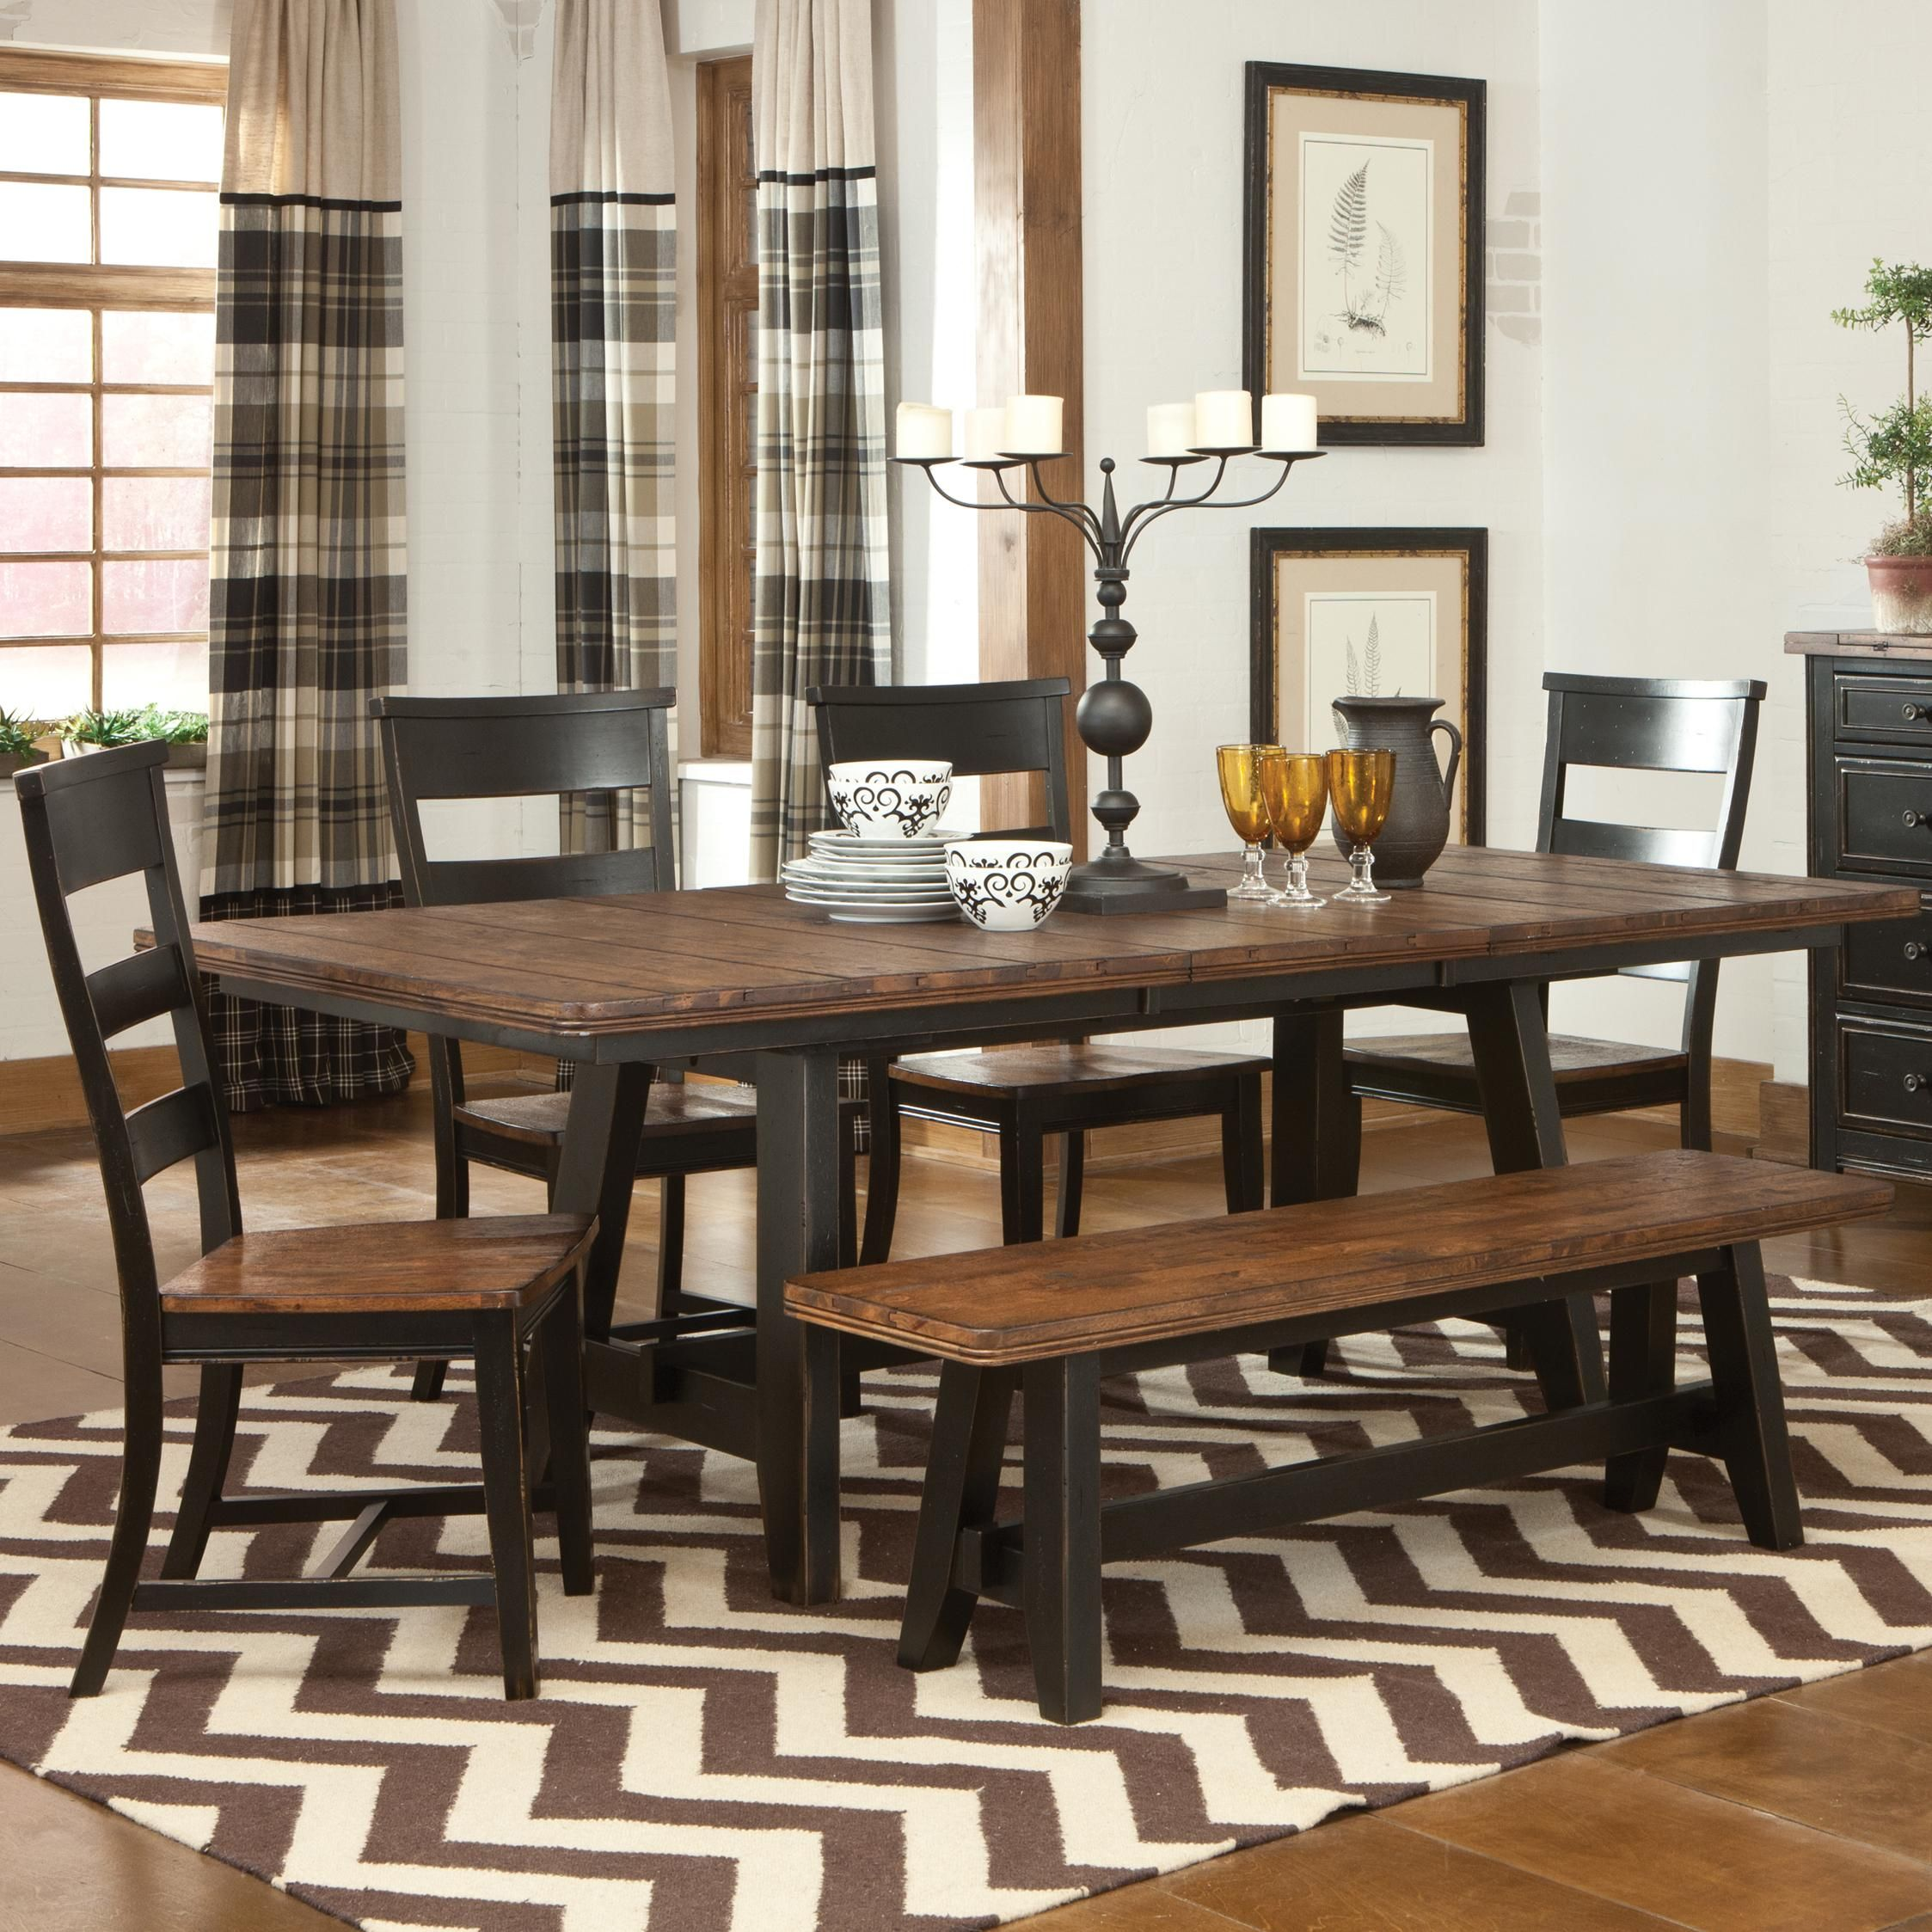 Black wood dining table set - Picture Of Most Comfortable Dining Chairs For Your Longer Dining Session